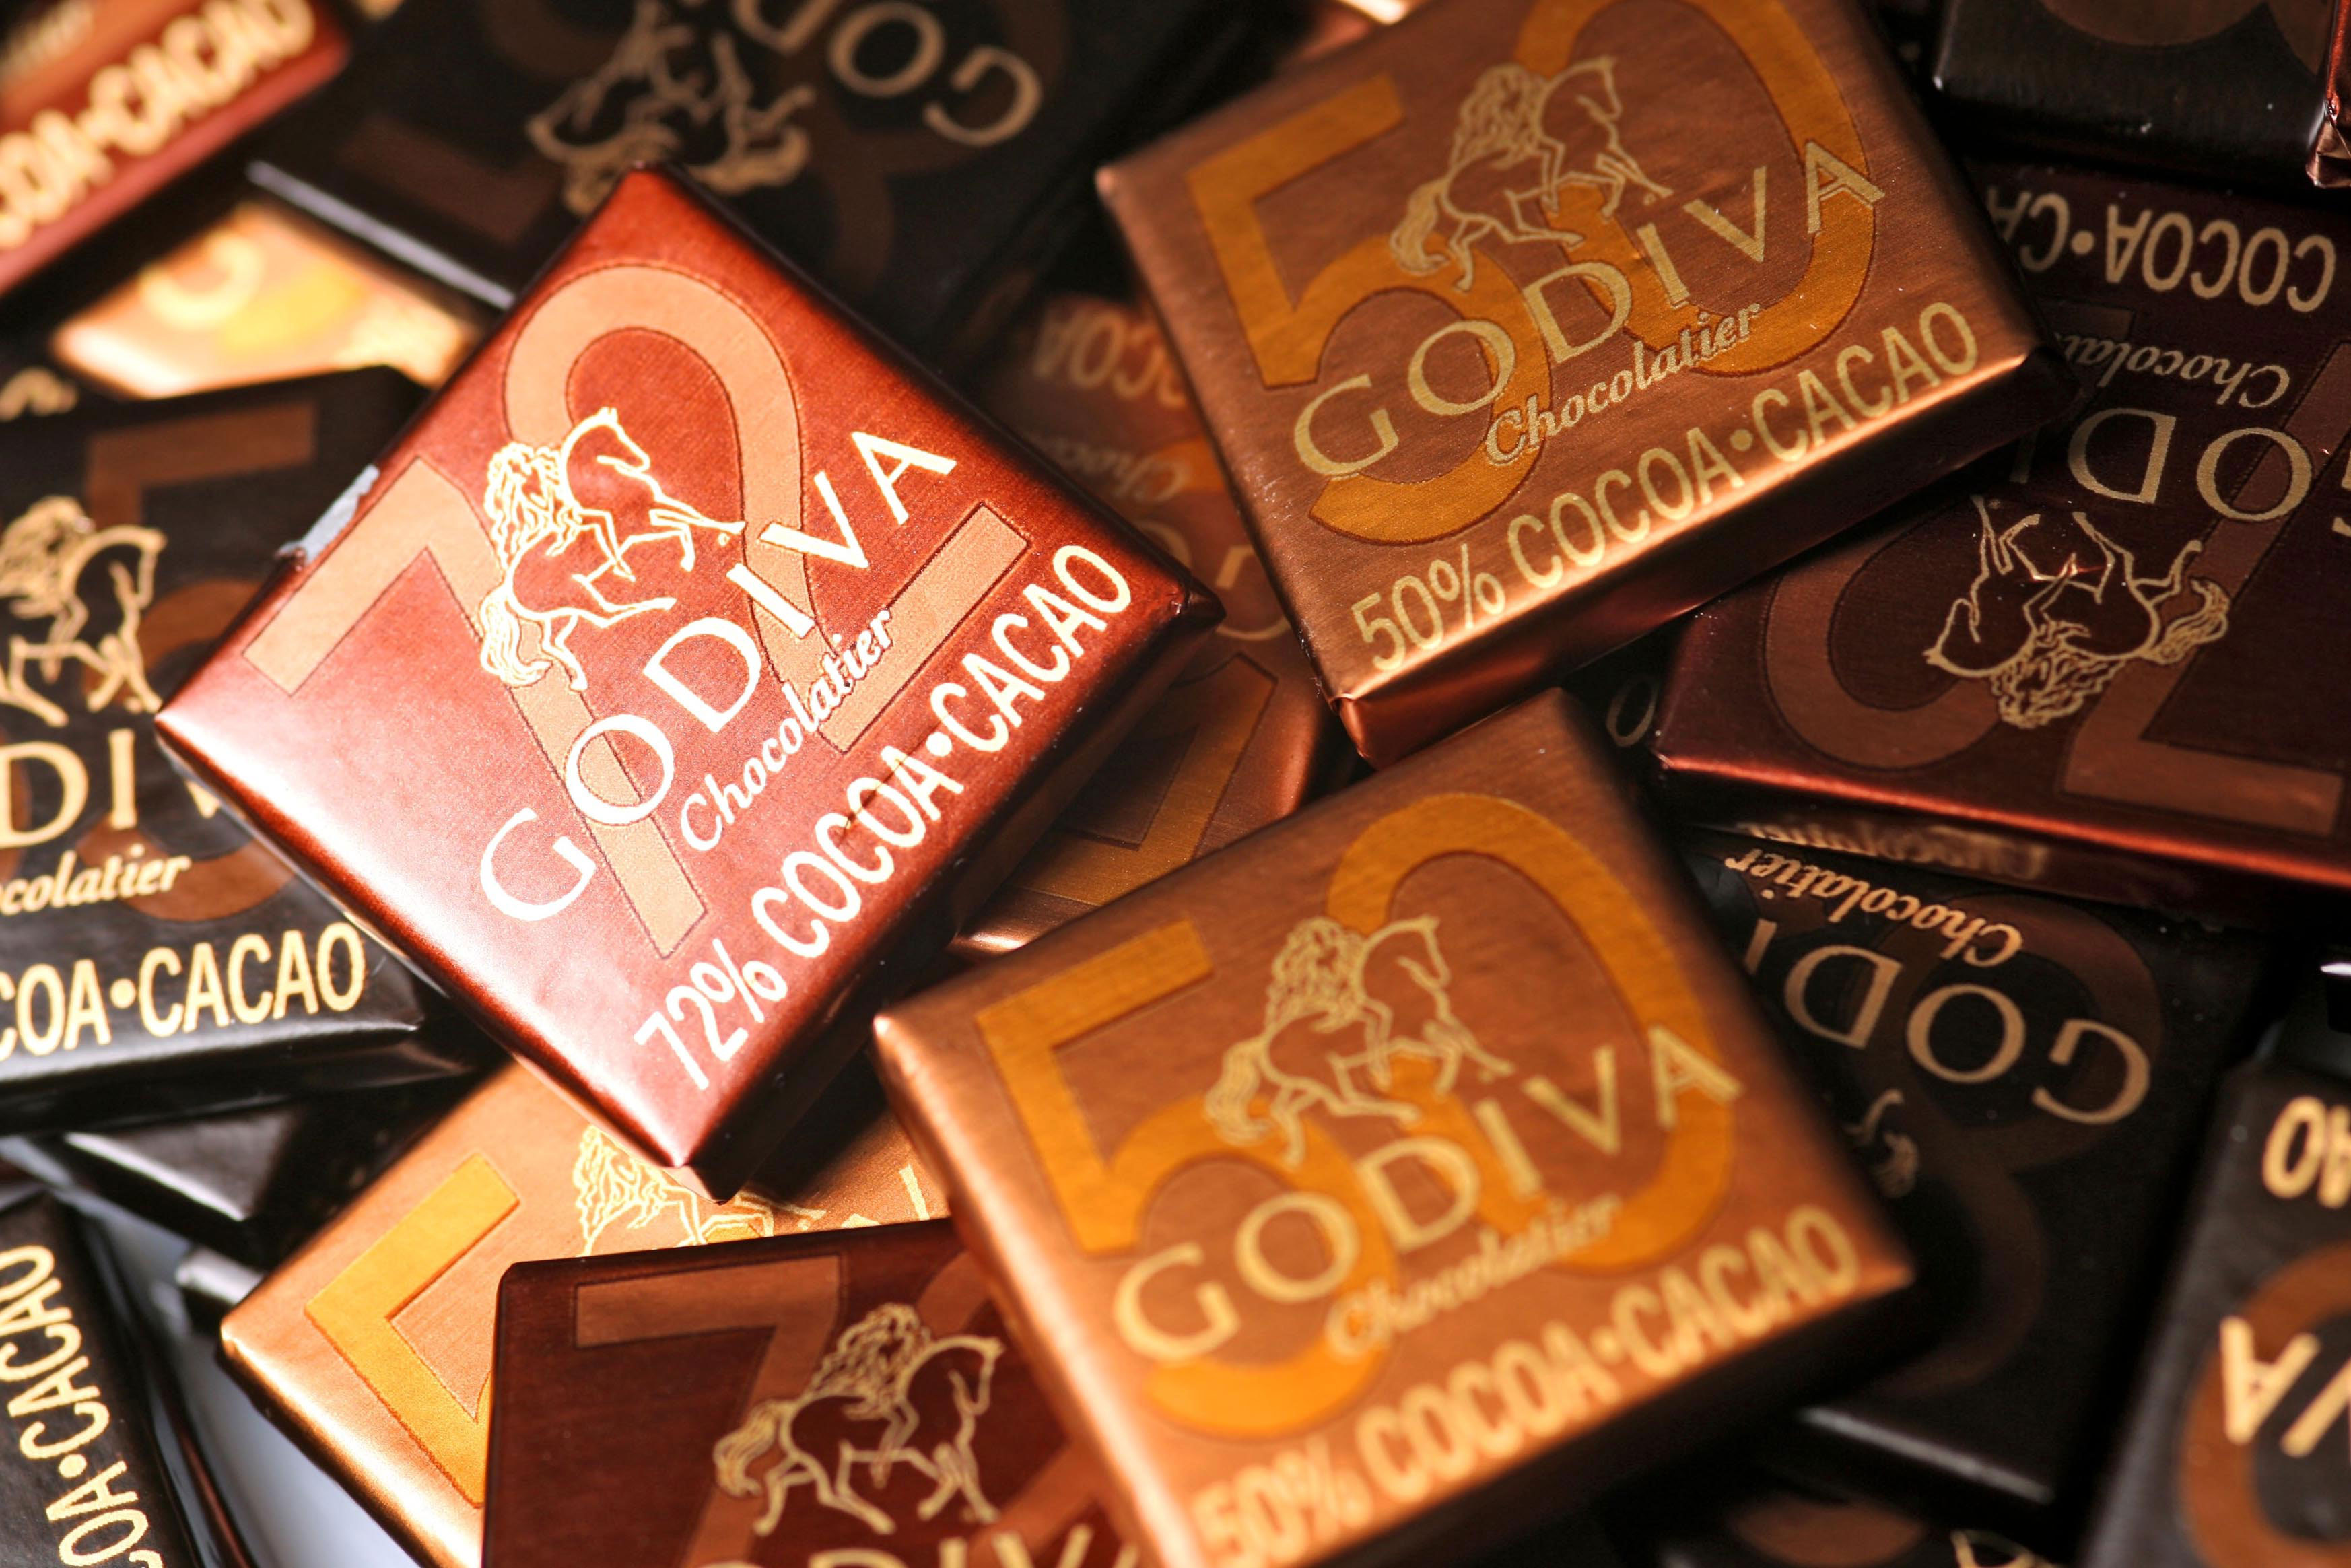 Godiva is closing or selling all of its stores in the United States